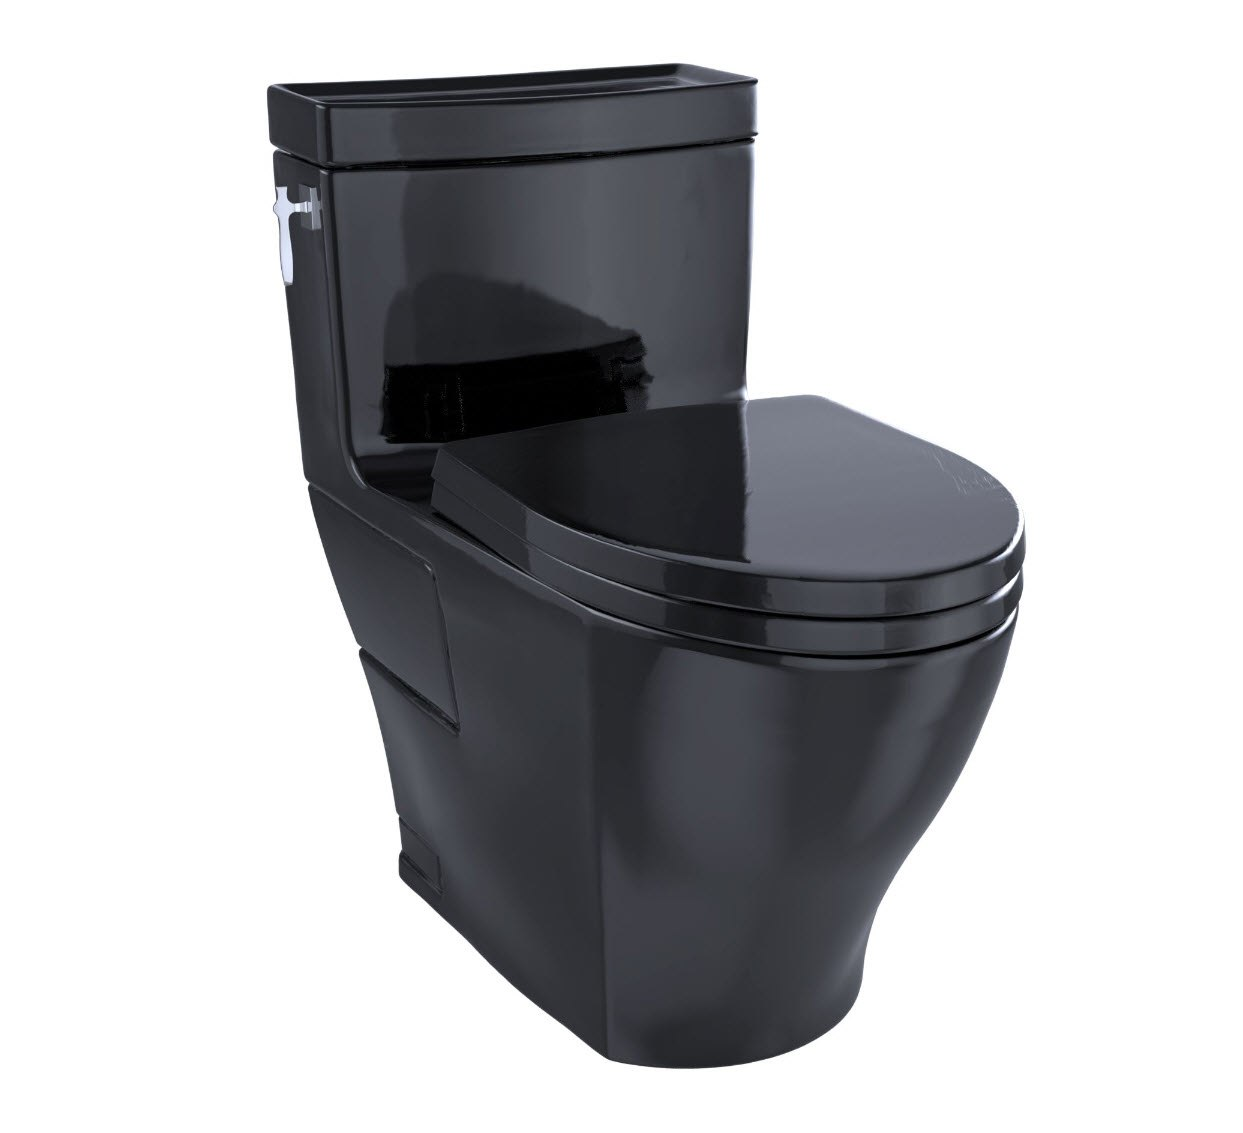 TOTO MS626124CEF#51 AIMES ONE-PIECE ELONGATED 1.28 GPF UNIVERSAL HEIGHT TOILET WITH SS124 SEAT IN EBONY